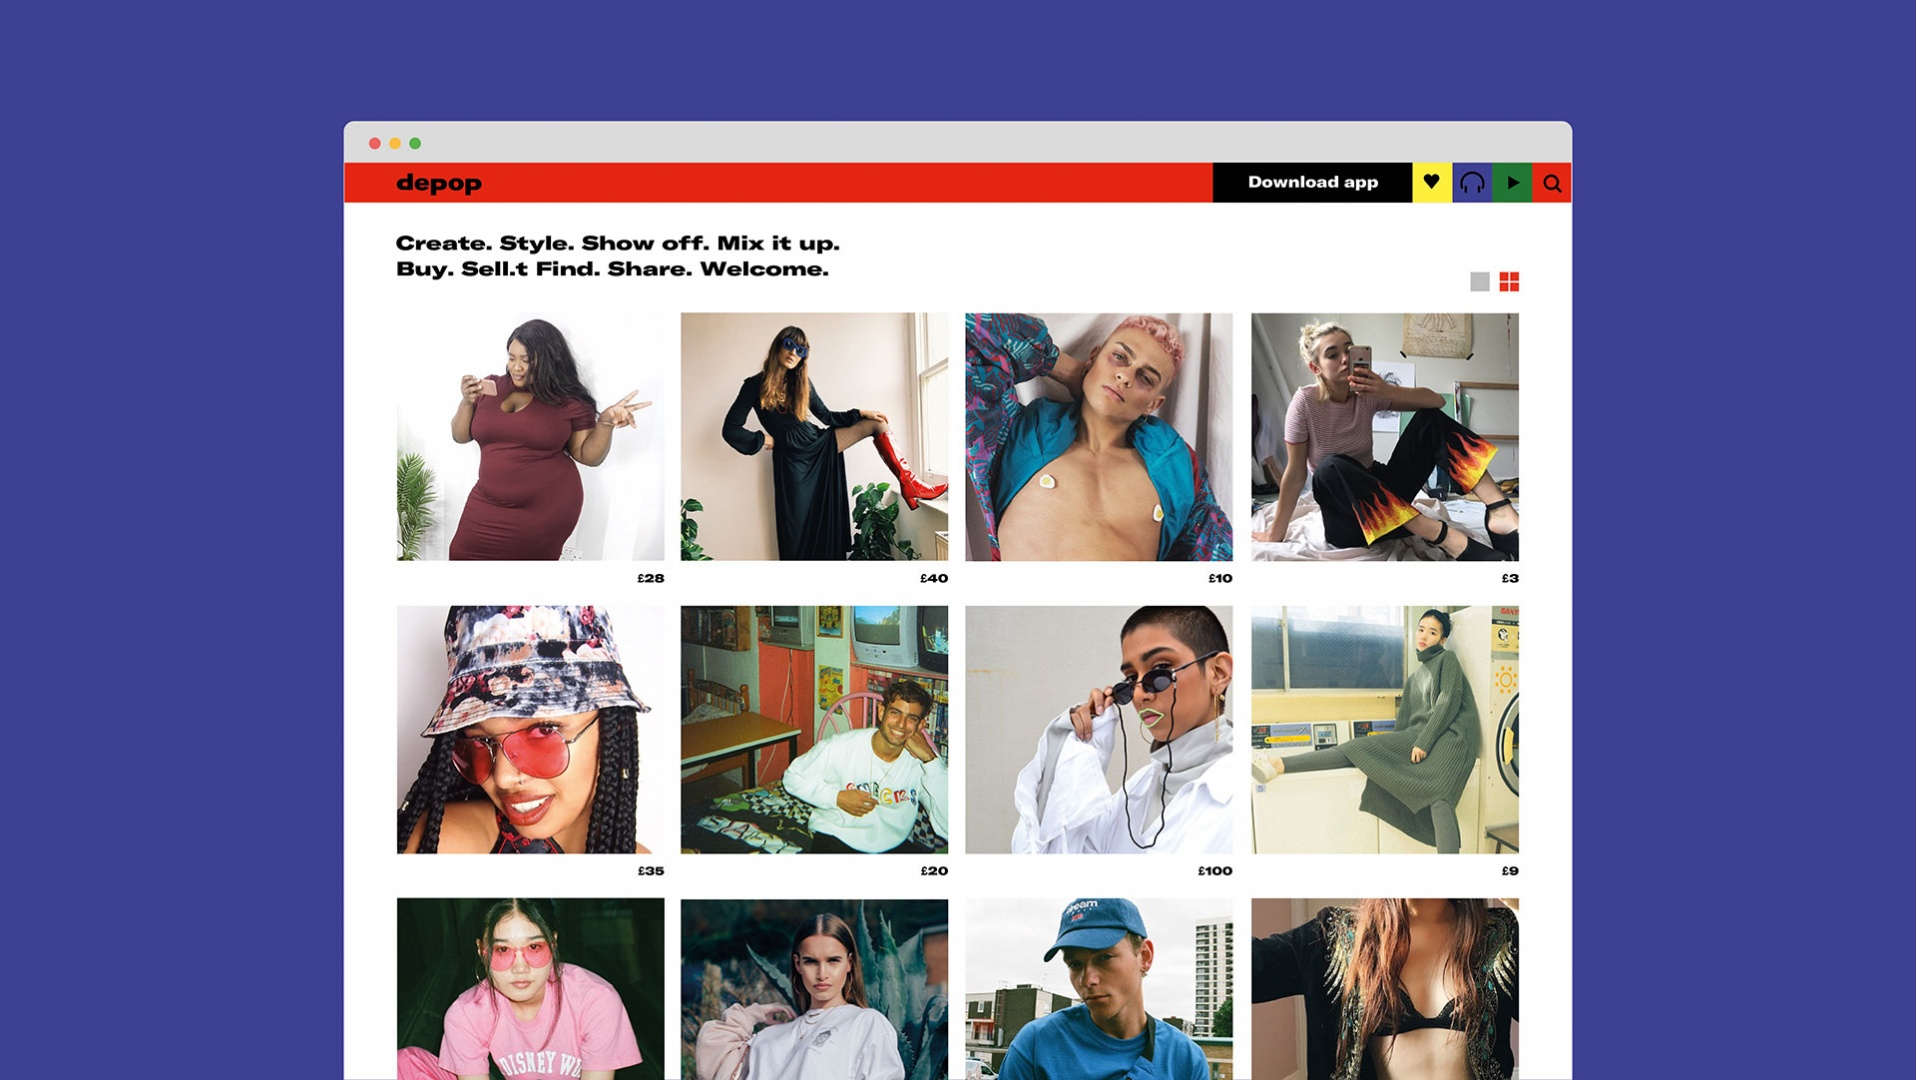 9d43be6738c Depop rebrand by DesignStudio - The Annual 2018